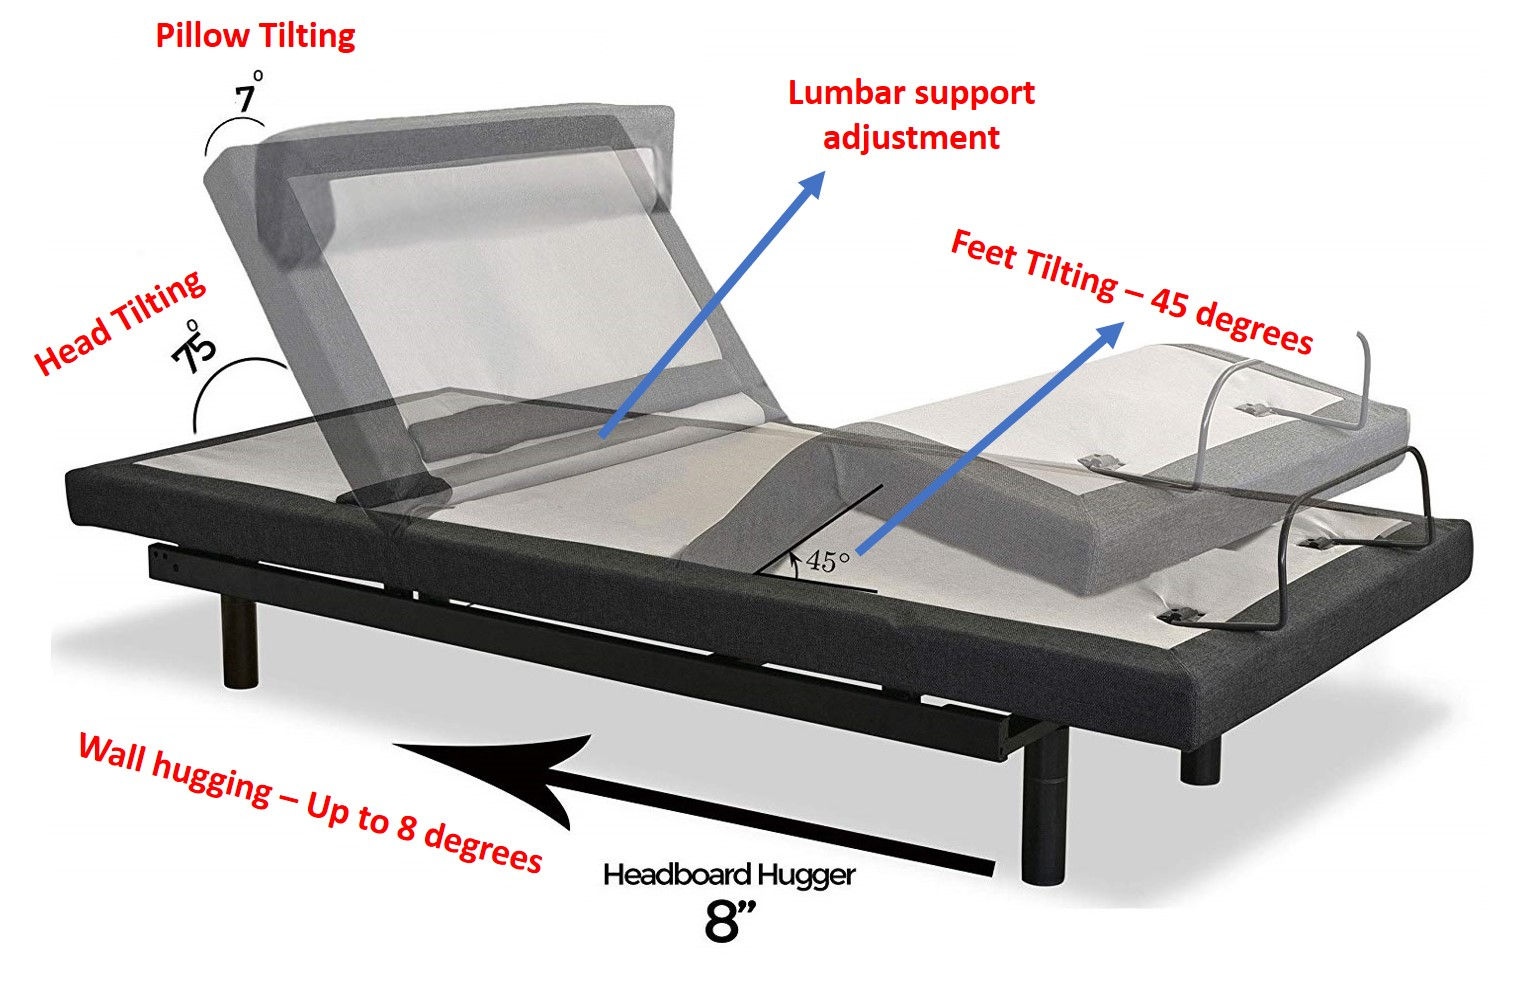 Sven and Son Adjustable Bed Review - All Adjustments